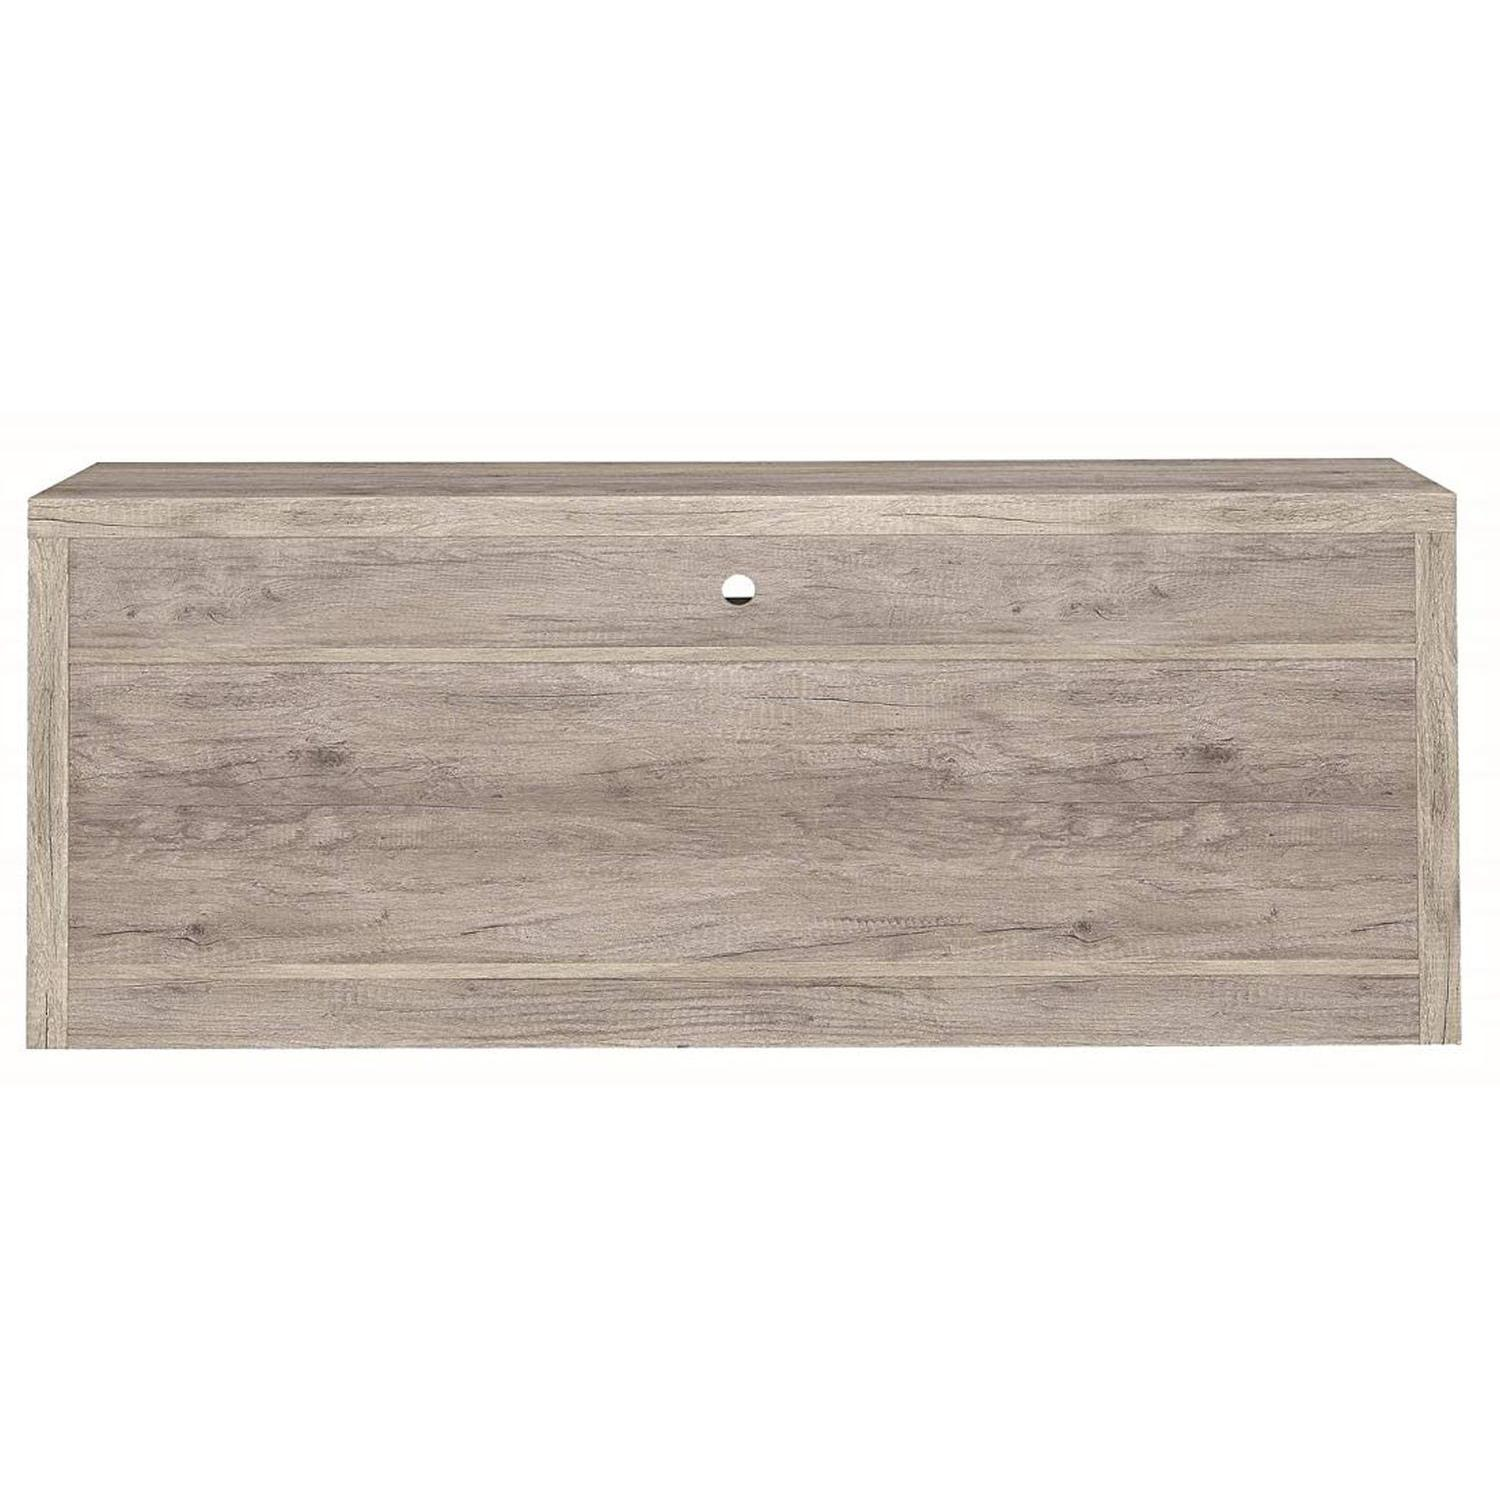 TV Stand In Rustic Oak Finish w/ 2 Cabinets & 2 Drawers - image-19